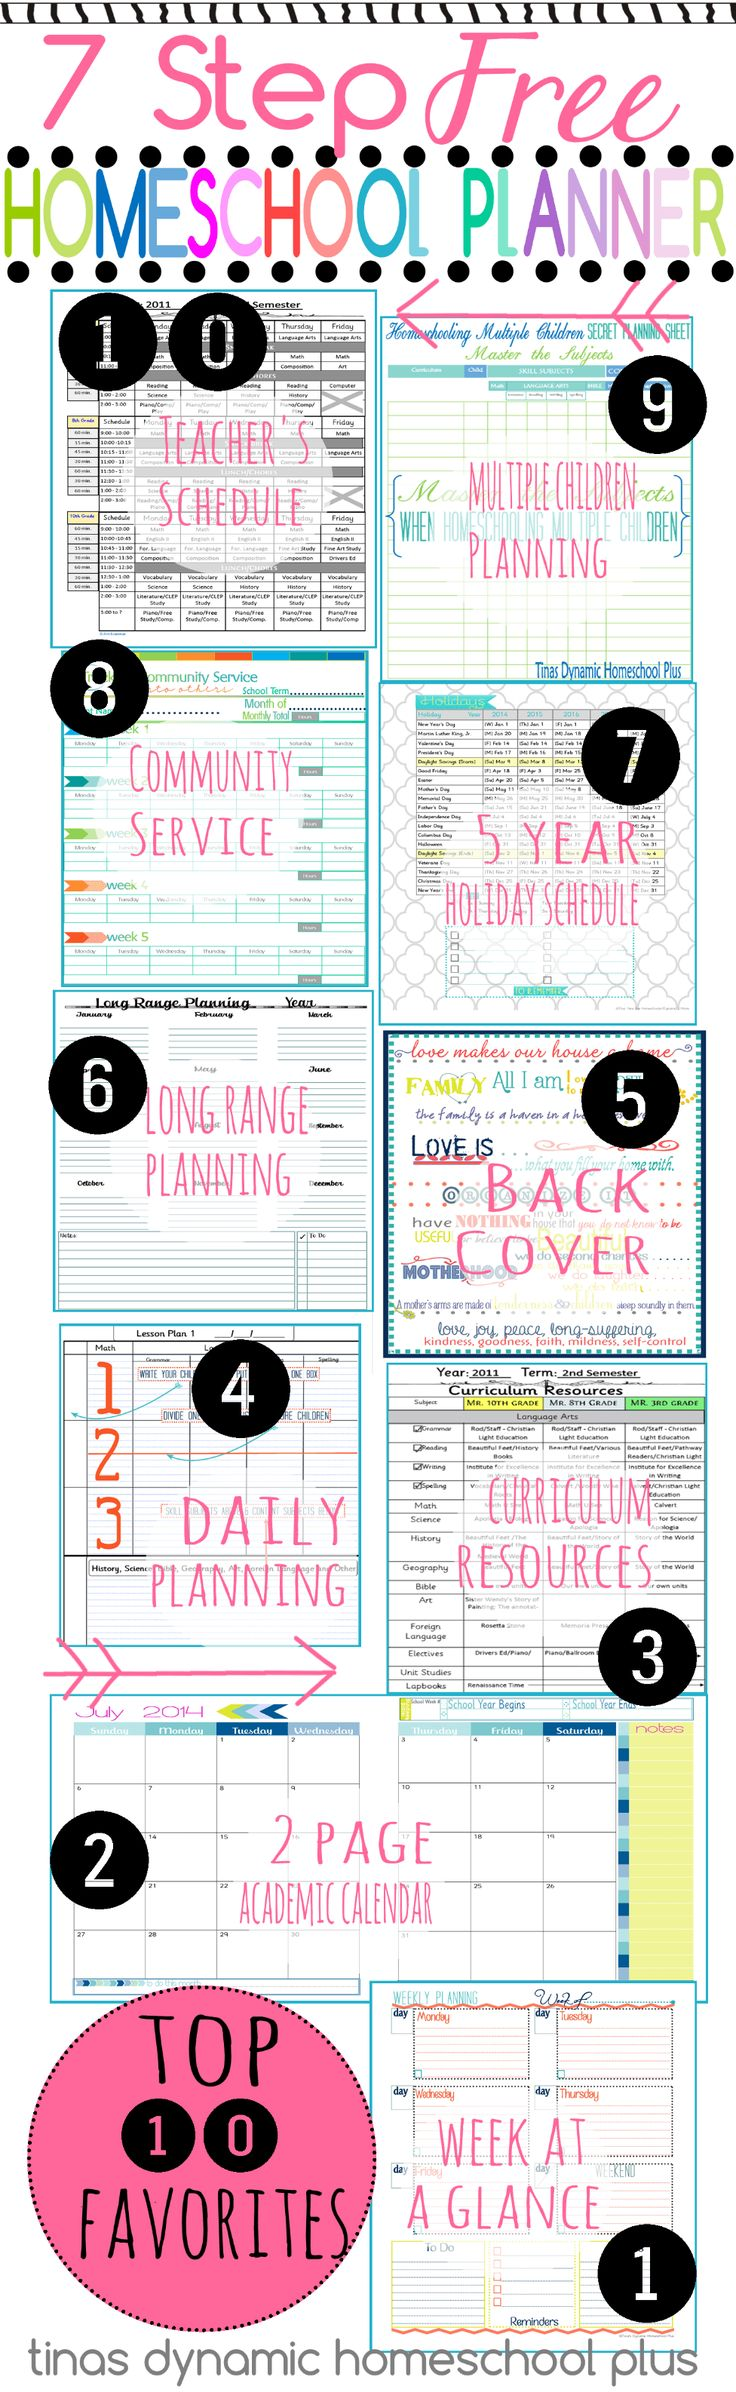 7 Step Homeschool Planner .Top 10 Favorite Homeschool Forms |Tina's Dynamic Homeschool Plus #7stephomeschoolplanner